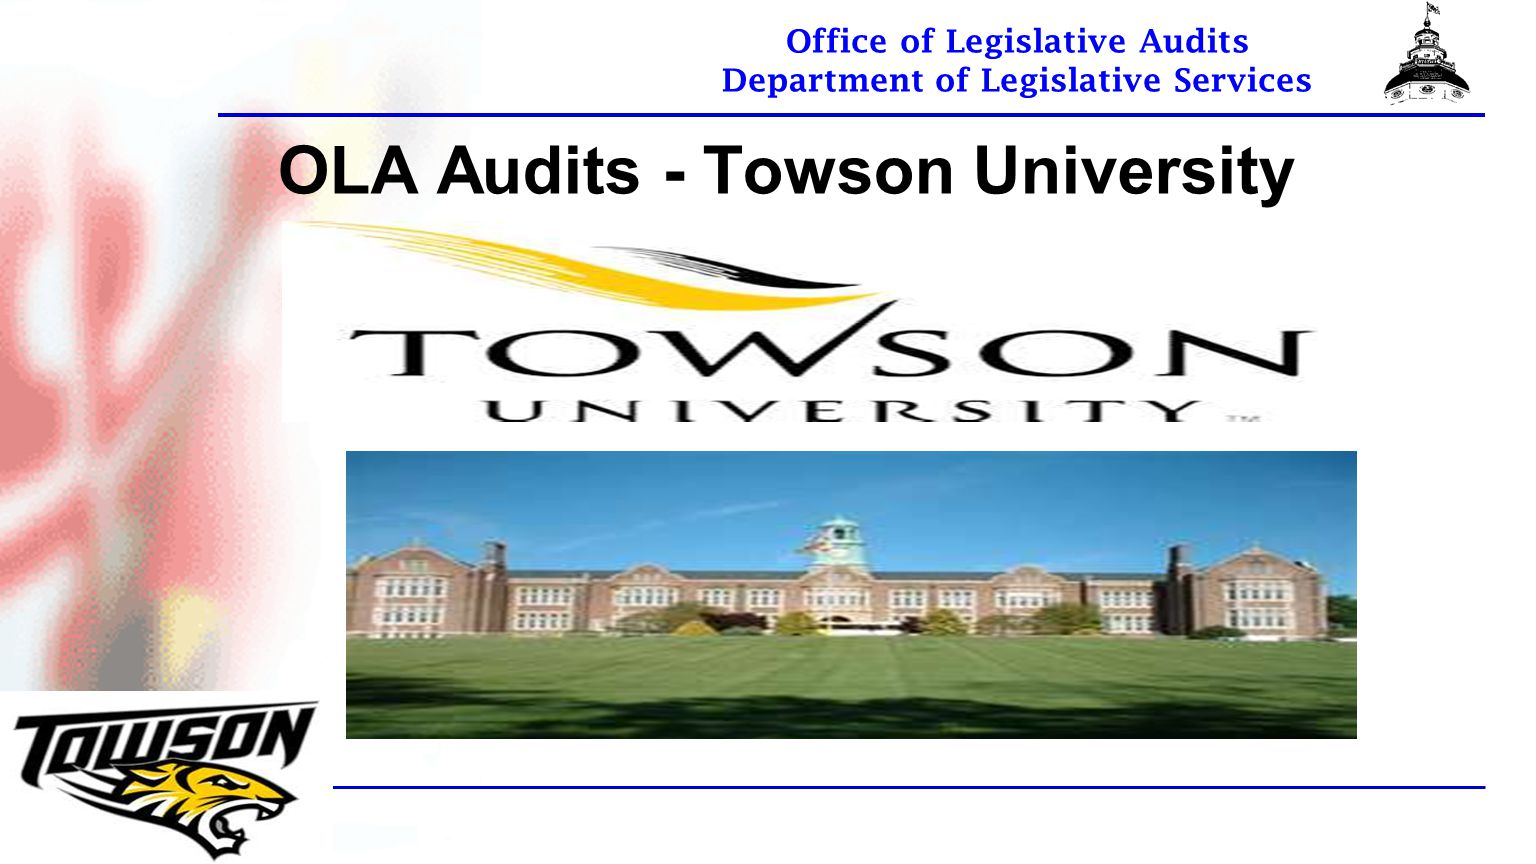 Office of Legislative Audits Department of Legislative Services OLA Audits - Towson University